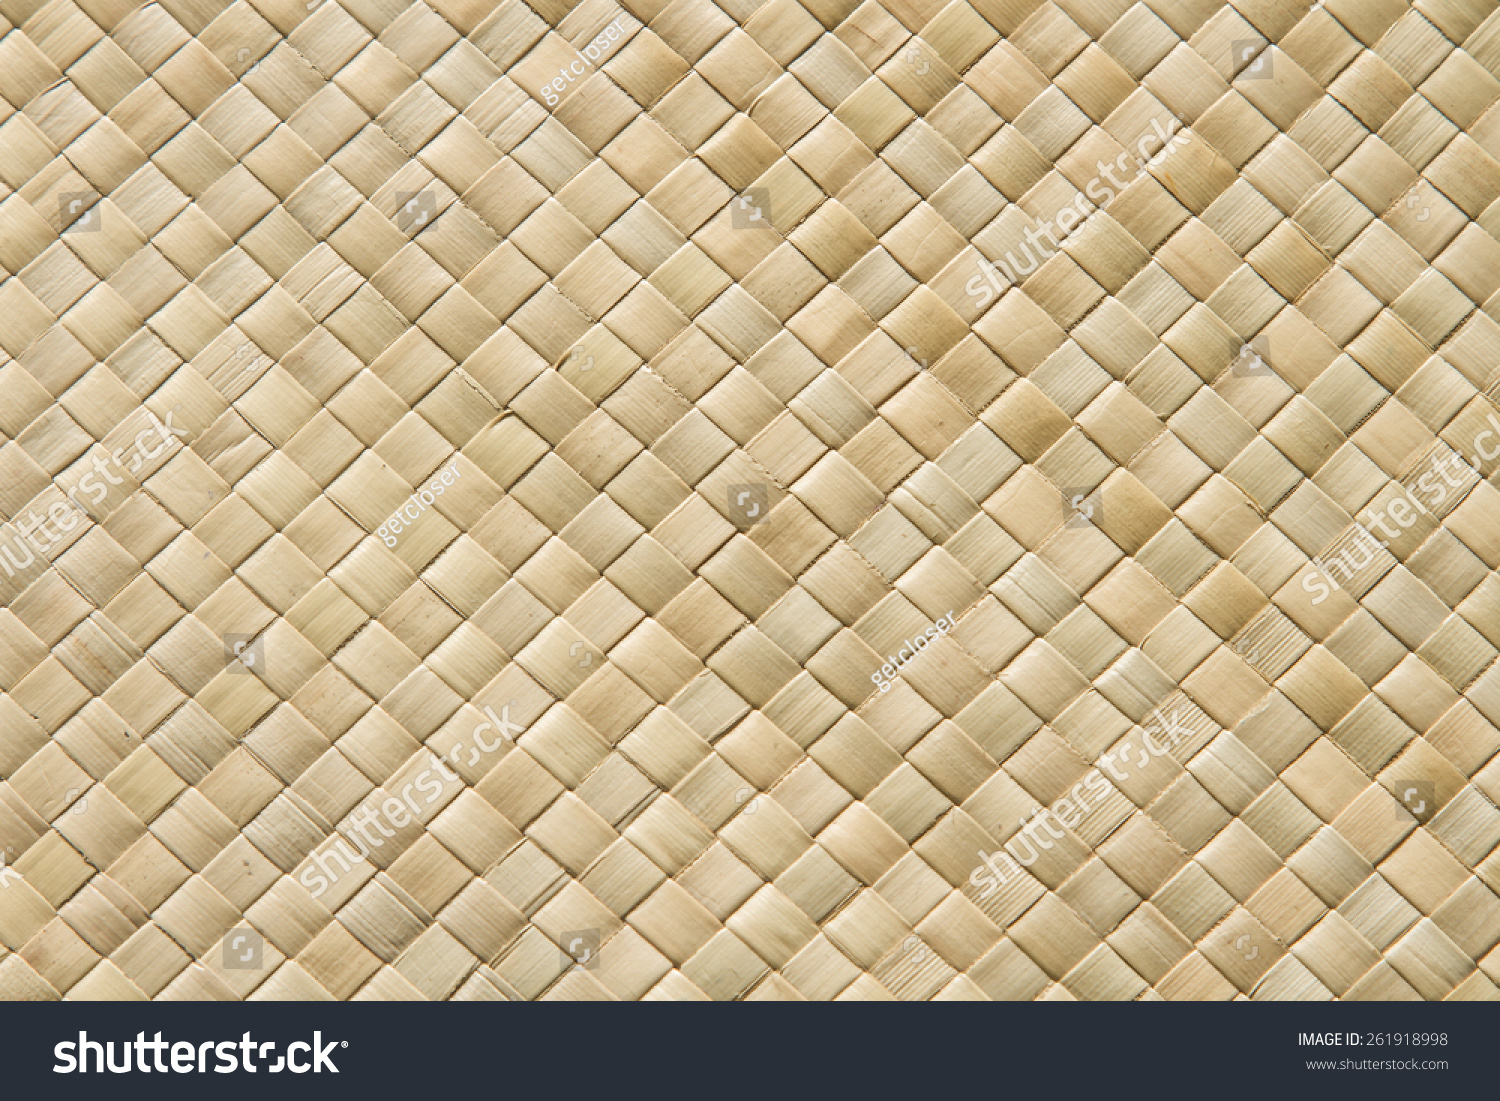 Traditional Polynesian Pandanus weaving, closeup of a woven mat | EZ ...